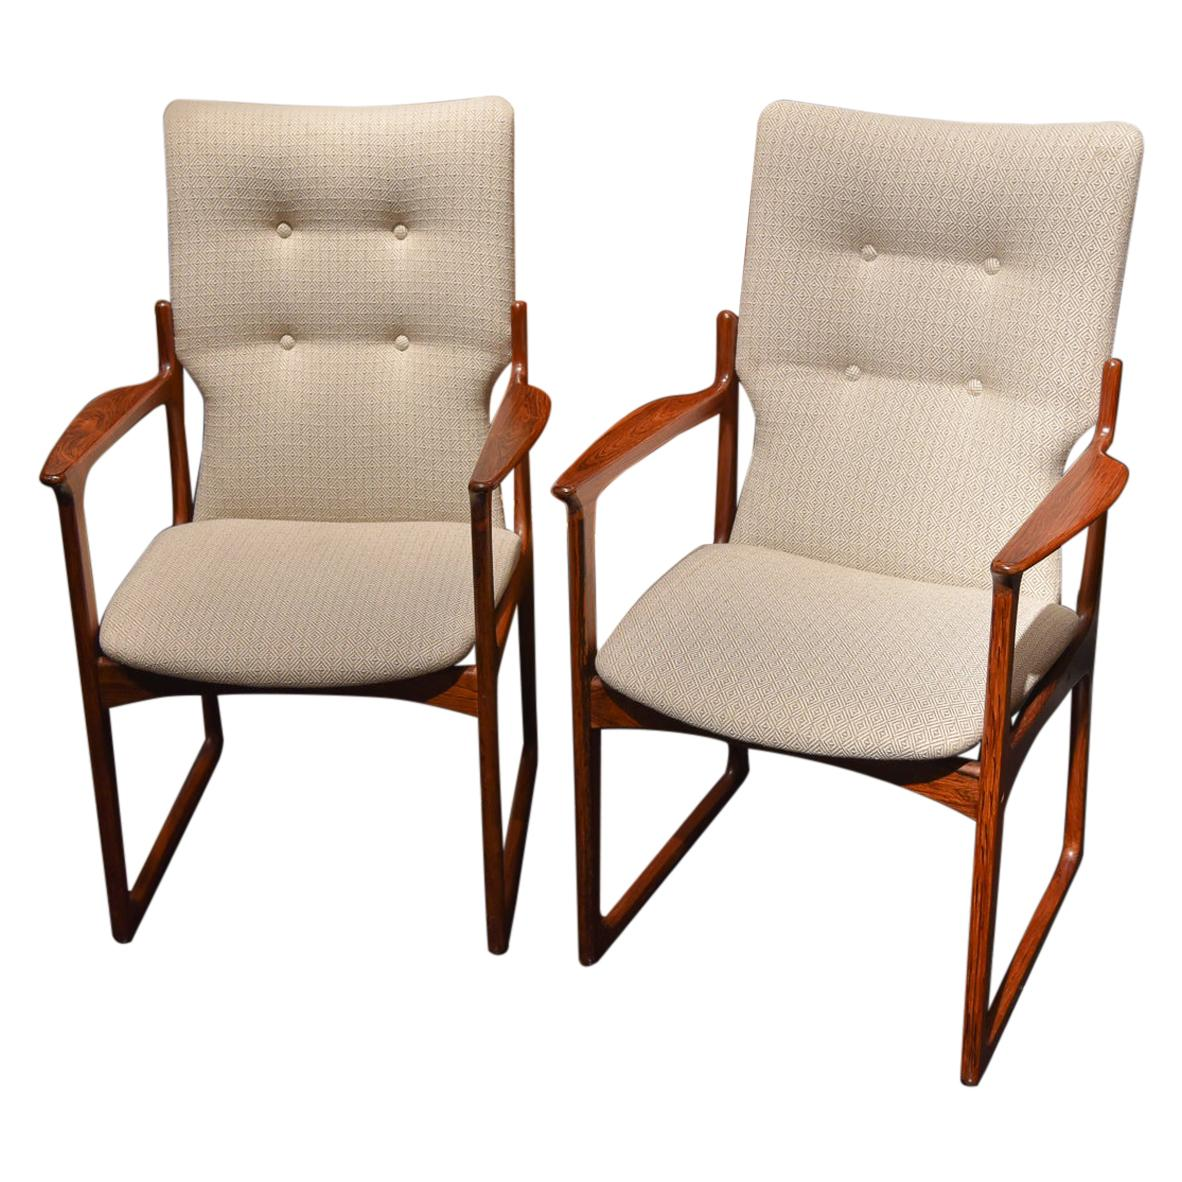 Pair of Danish Rosewood Chairs Attributed to Jacob Kjær